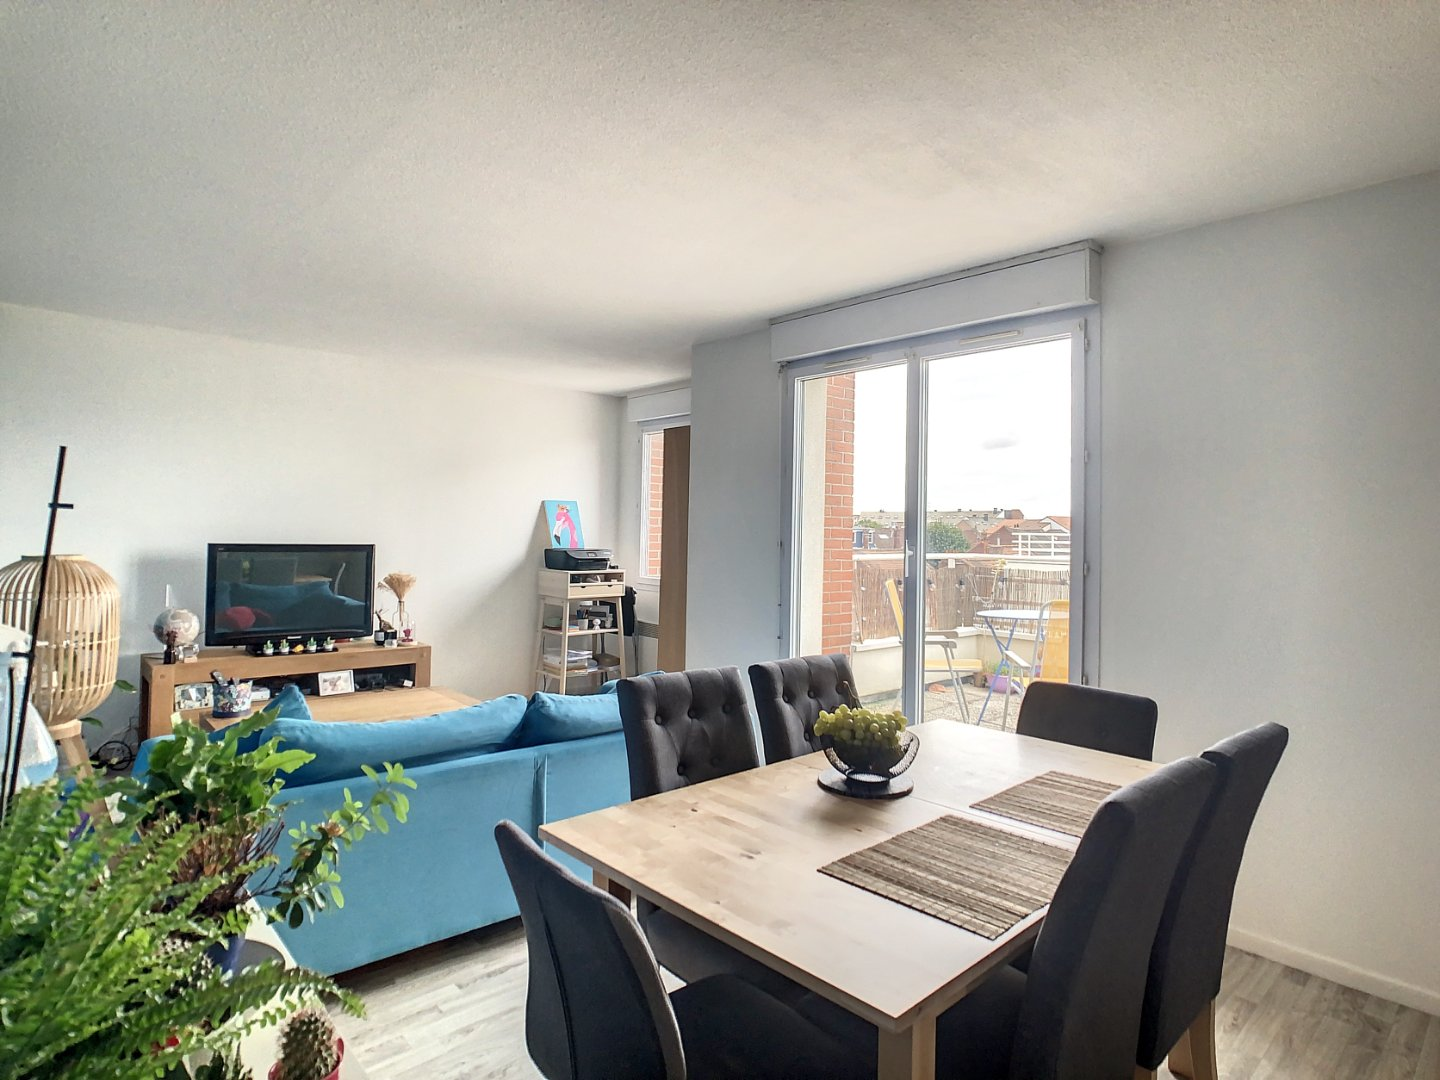 APPARTEMENT T3 - LILLE - 65,59 m2 - 241500 €